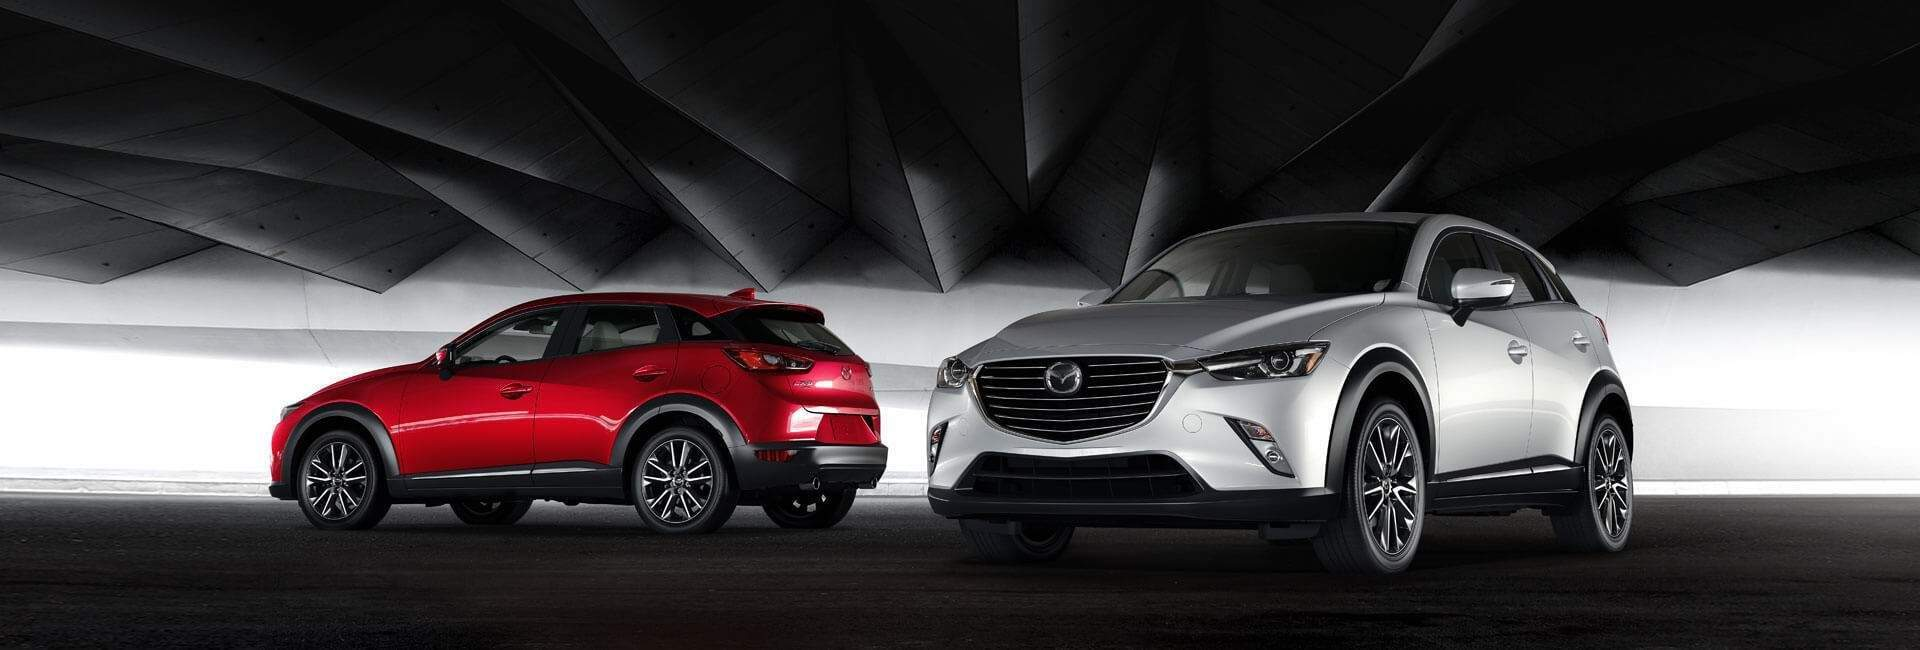 2017 Mazda CX-3 in Brooklyn